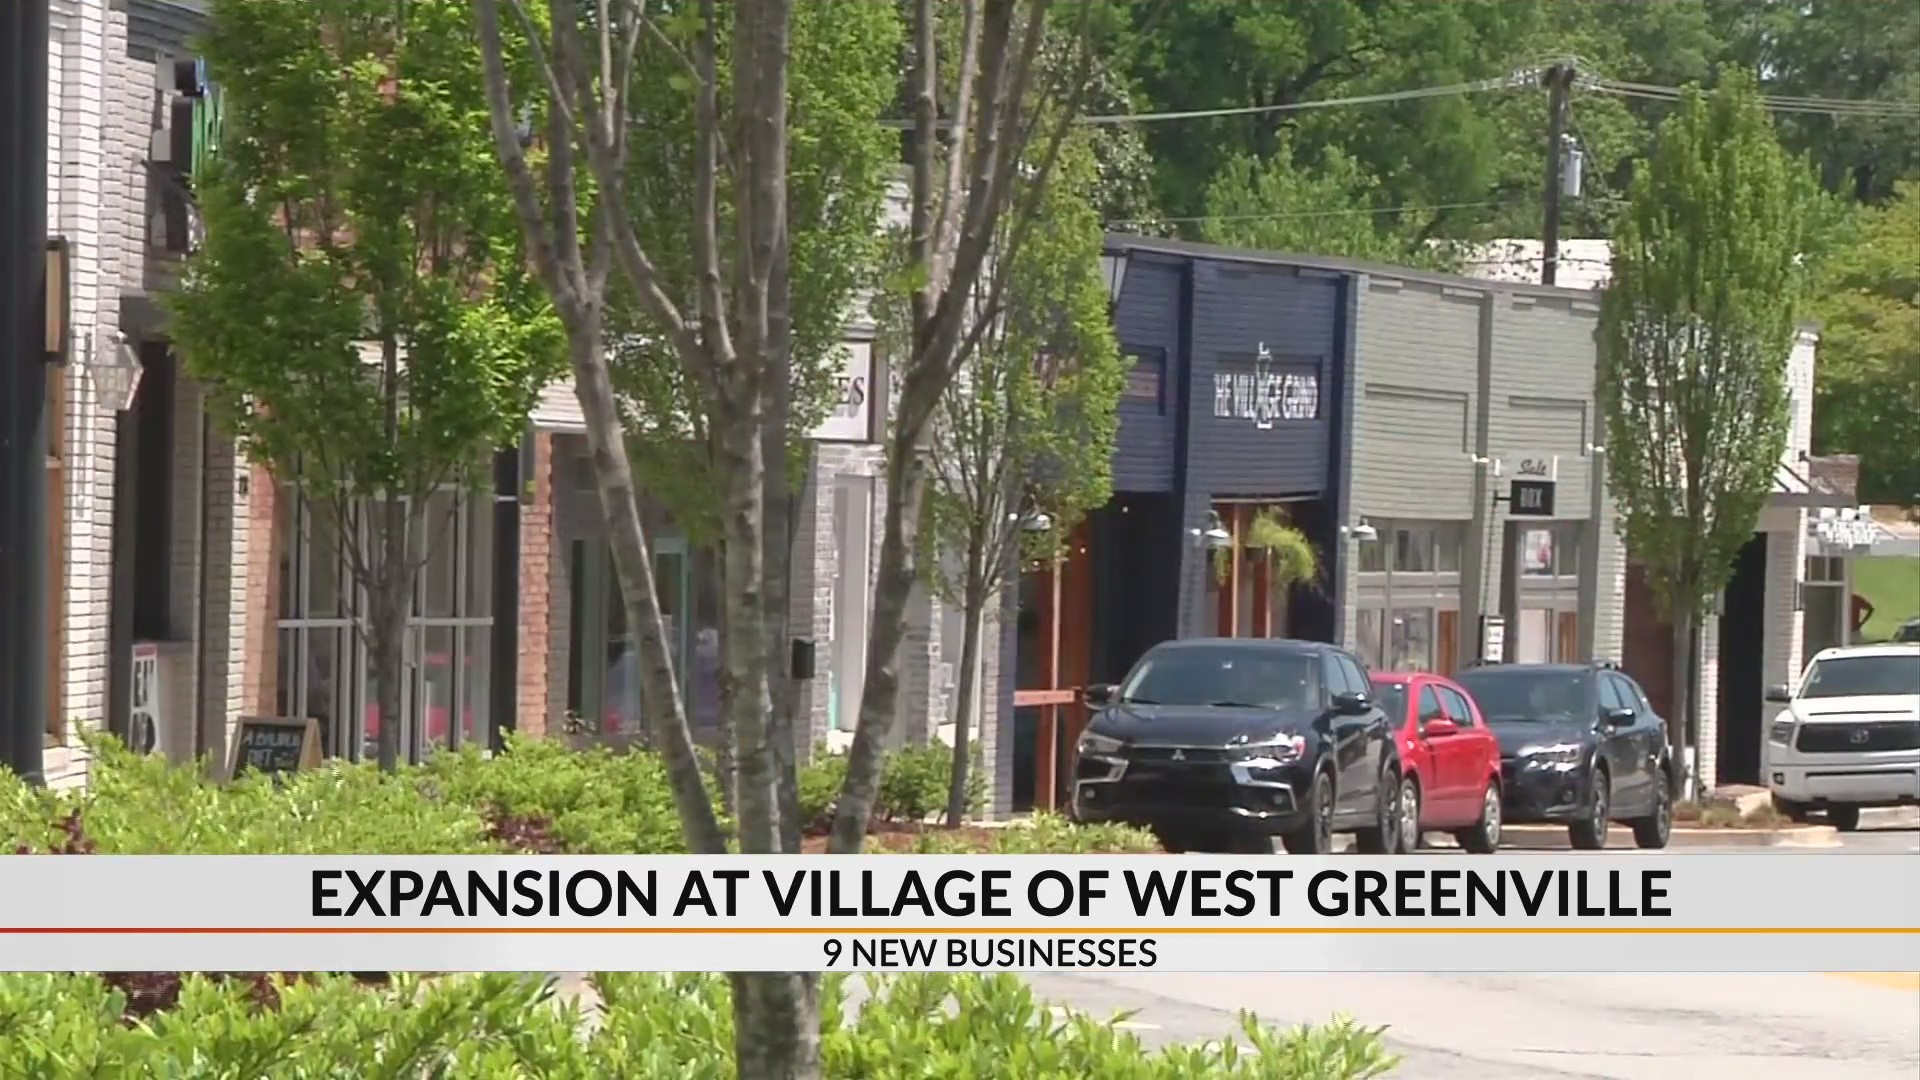 9 new businesses coming to the Village of West Greenville